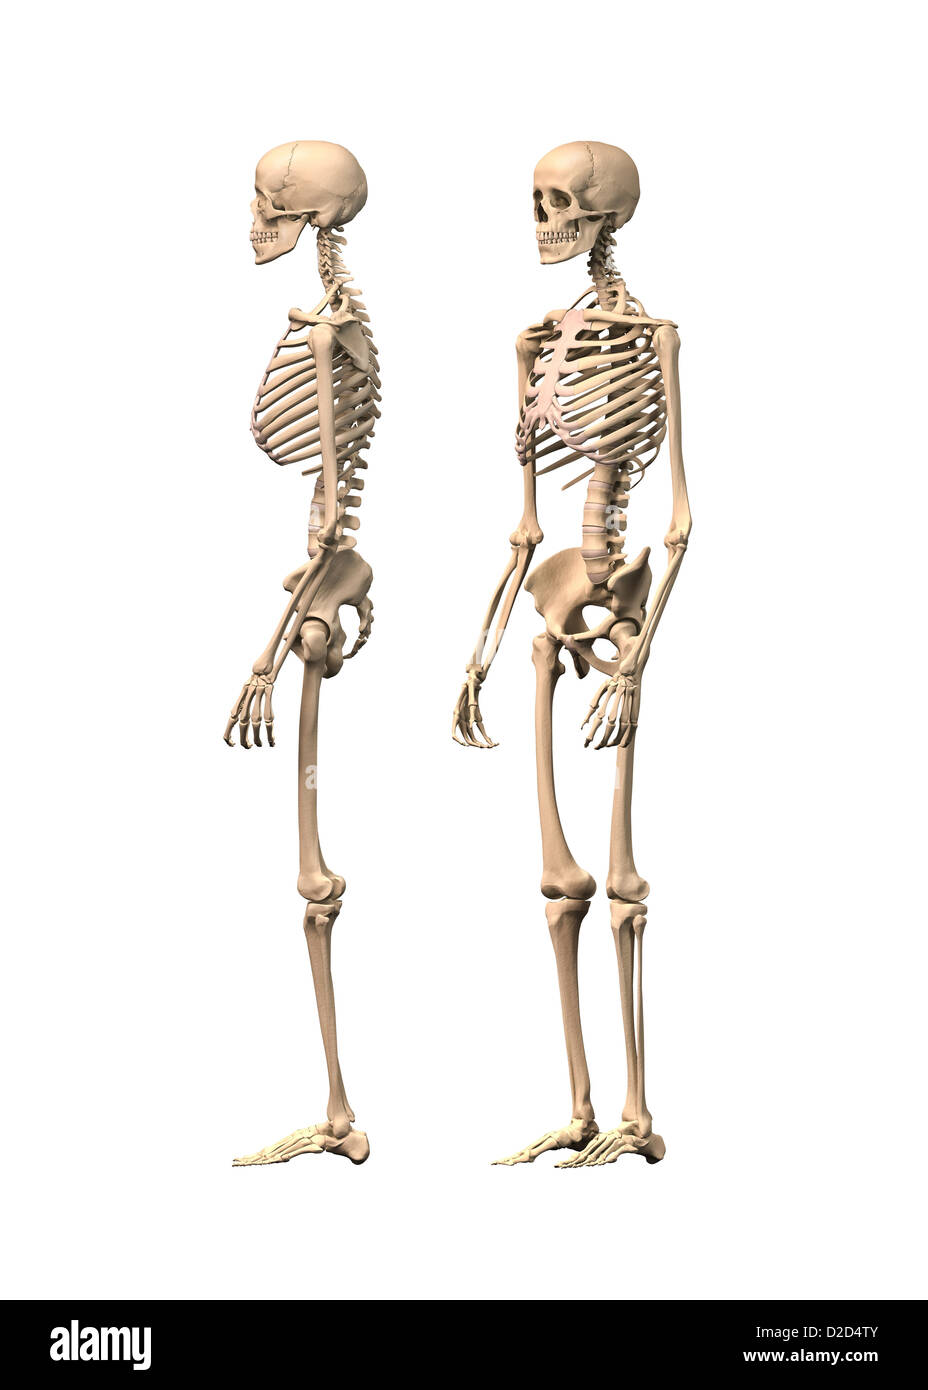 Human skeleton computer artwork - Stock Image